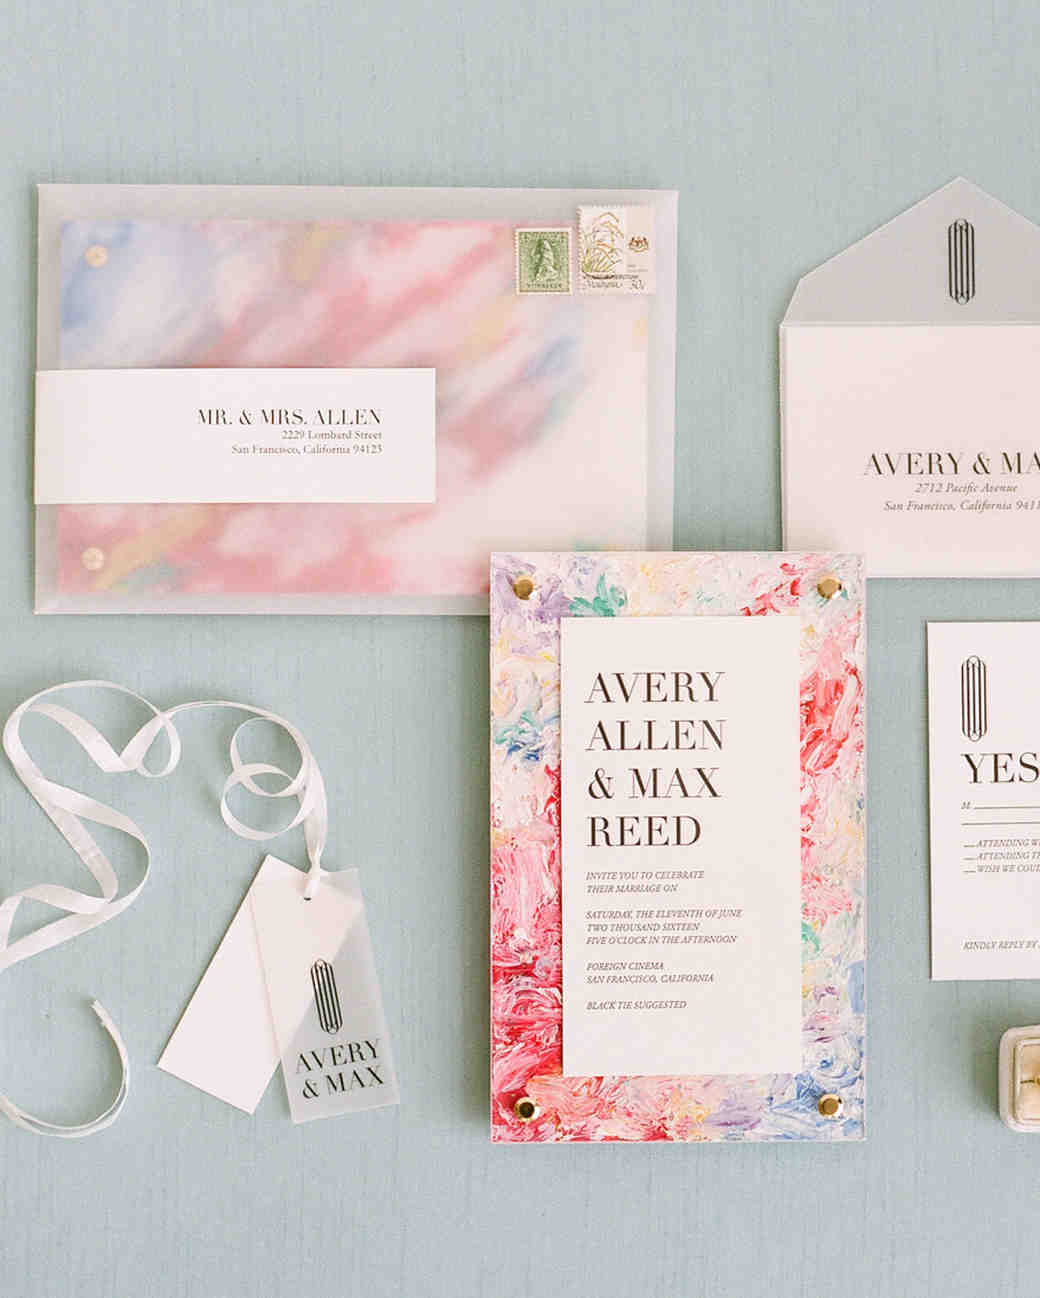 vellum envelopes for pink response cards